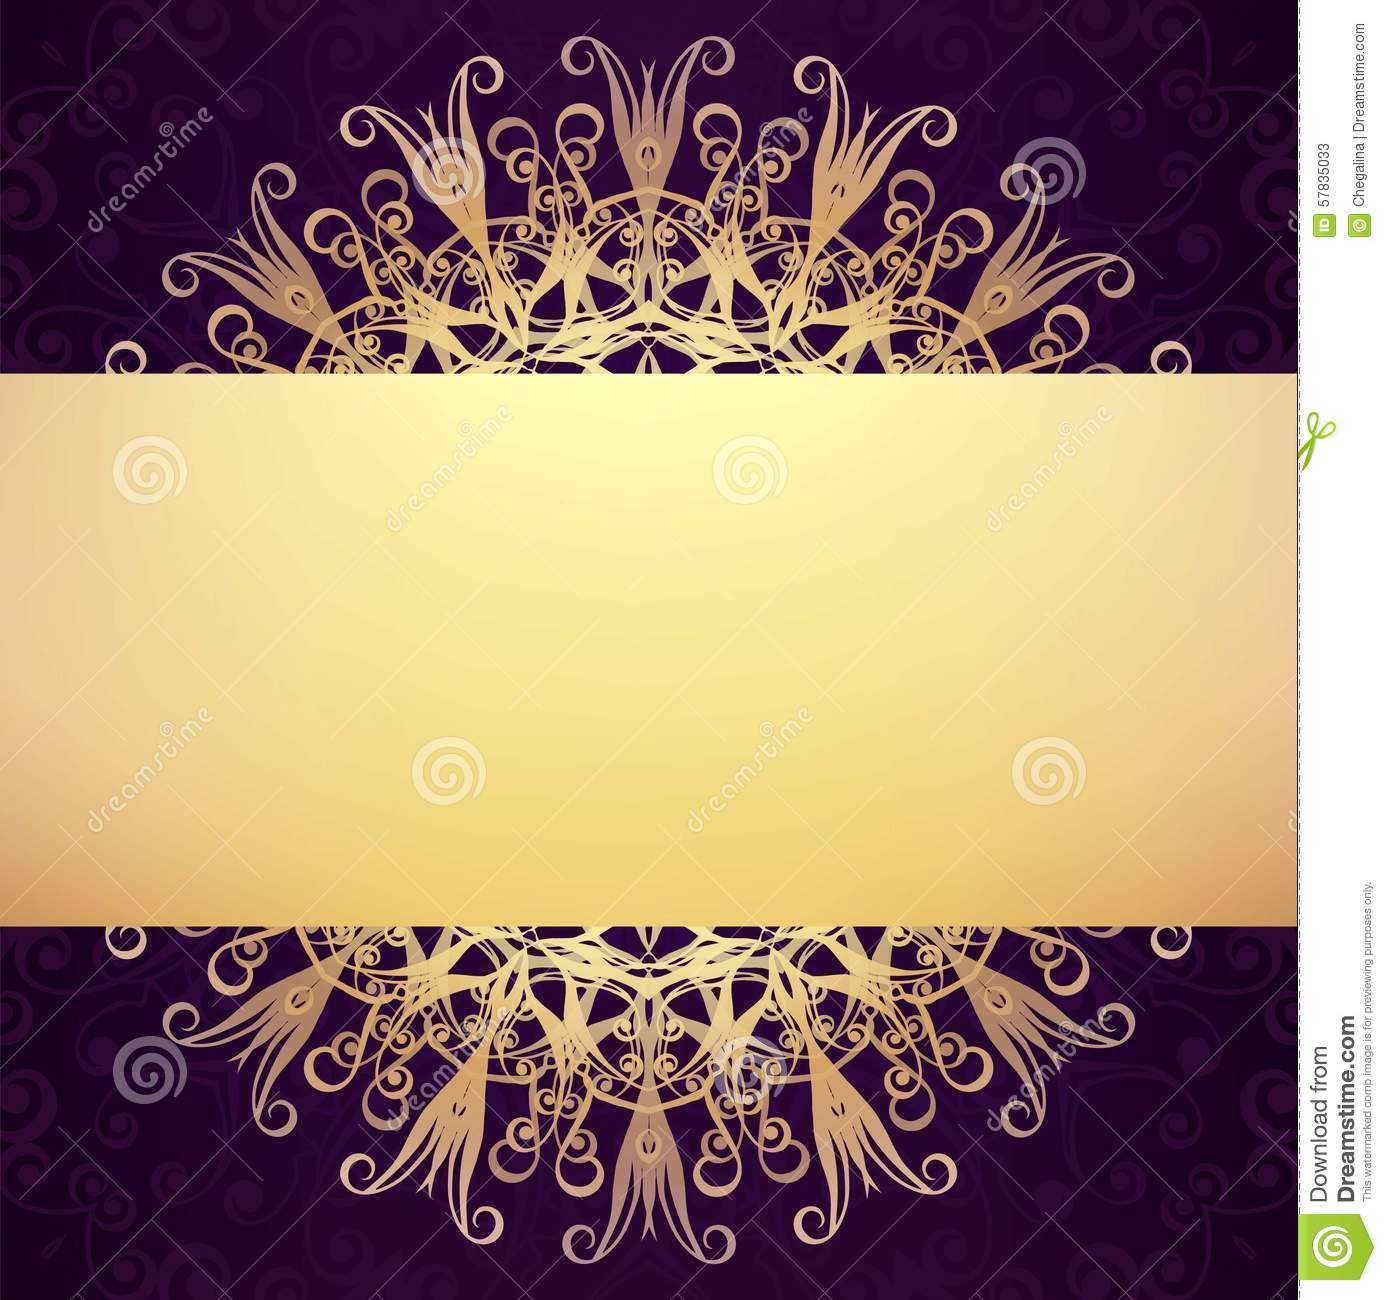 Invitation card resolution purplemoon invitation or greeting card design vector round ornament stock invitation samples stopboris Image collections